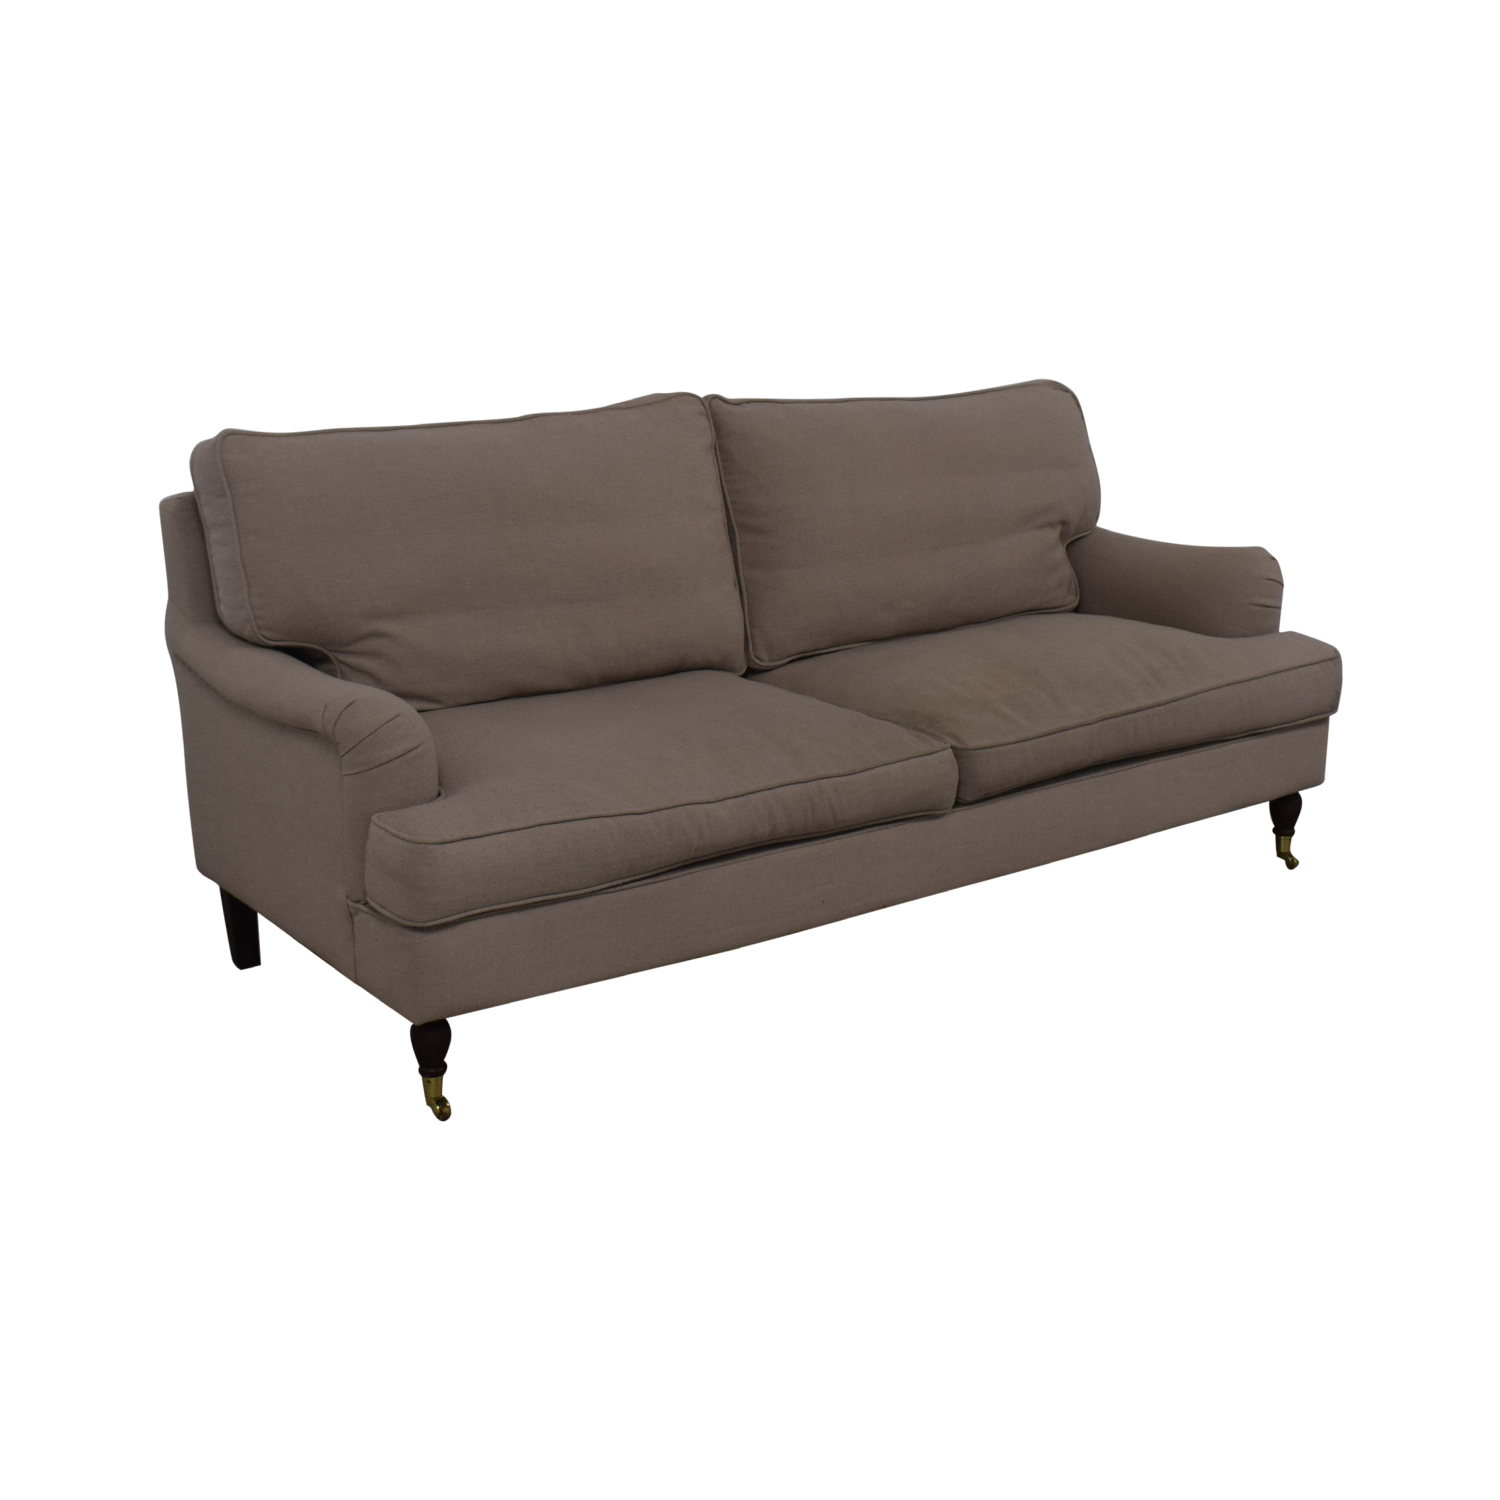 Safavieh Safavieh Roll Arm Sofa beige